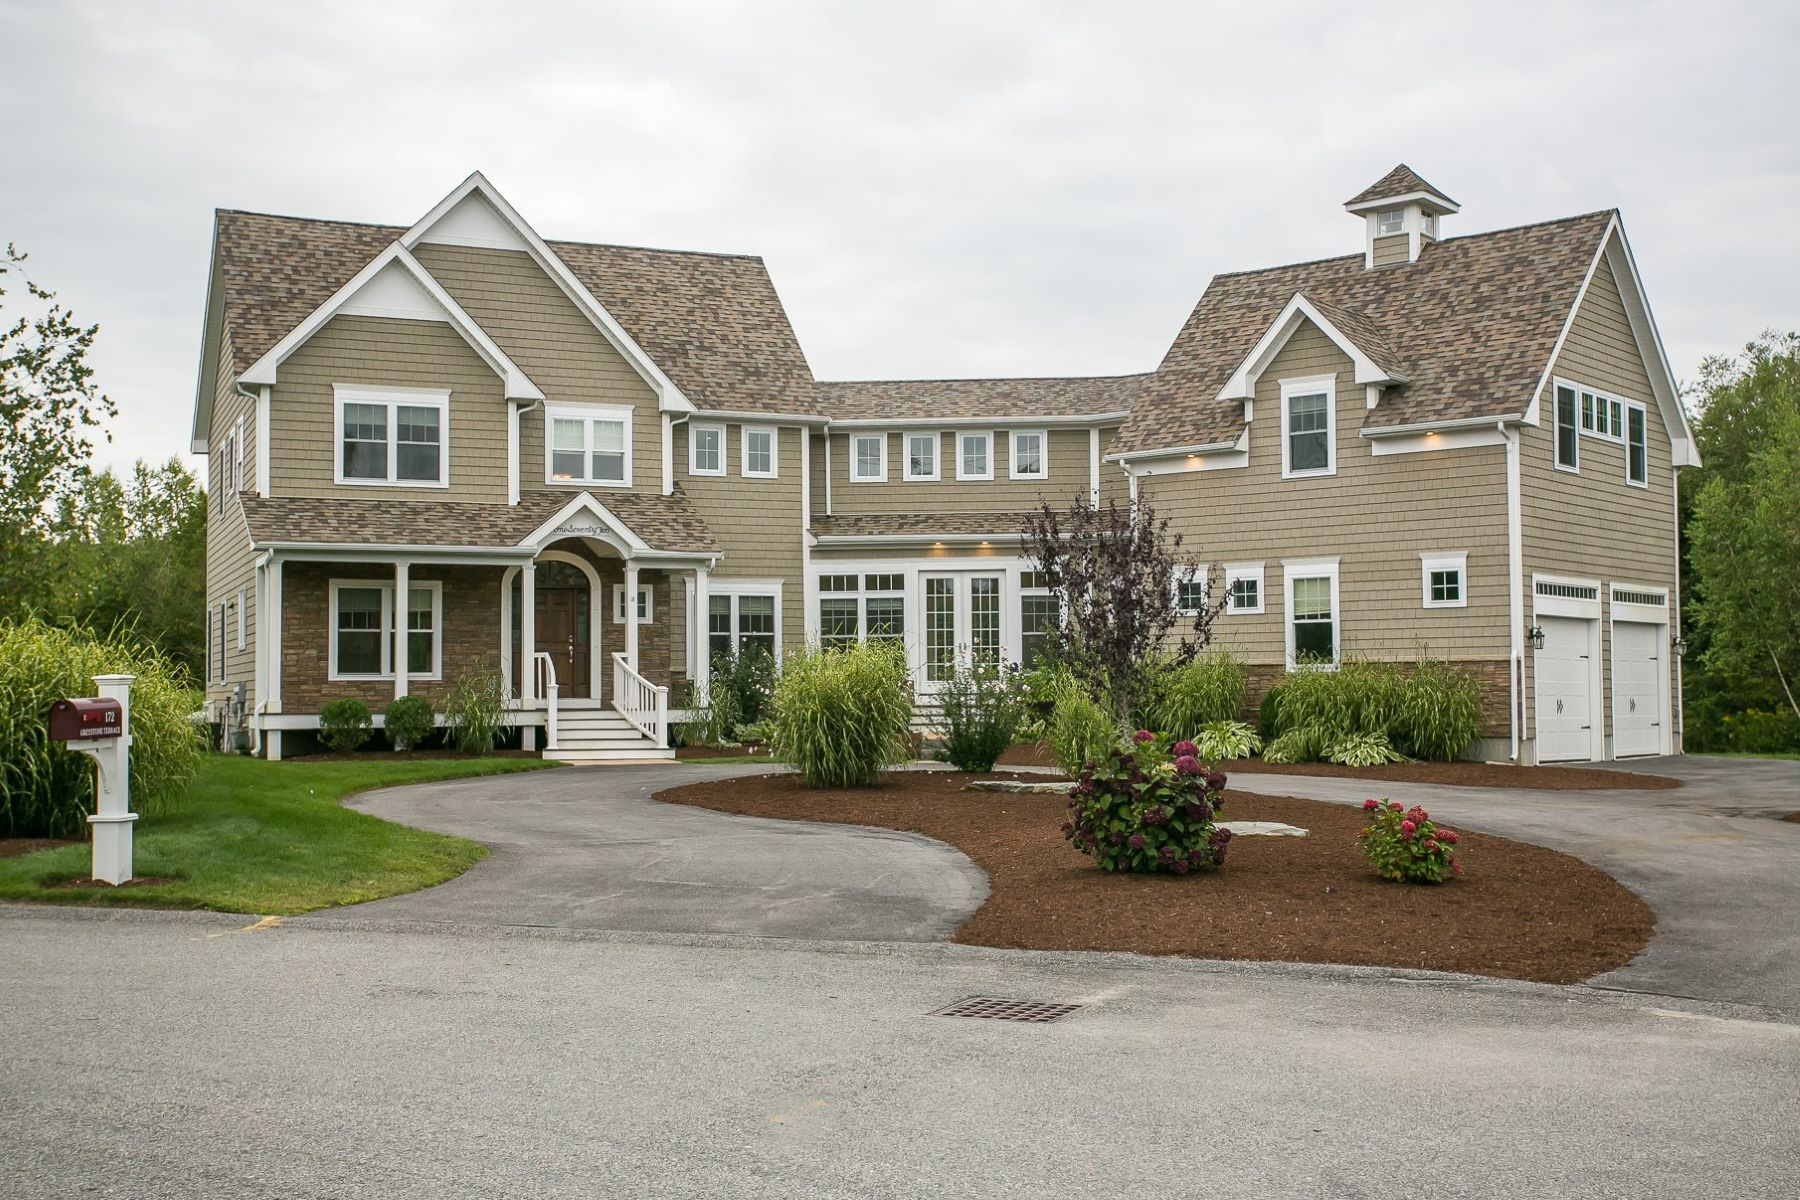 Single Family Homes for Sale at 172 Greystone Terrace, Portsmouth, RI 172 Greystone Terrace Portsmouth, Rhode Island 02871 United States